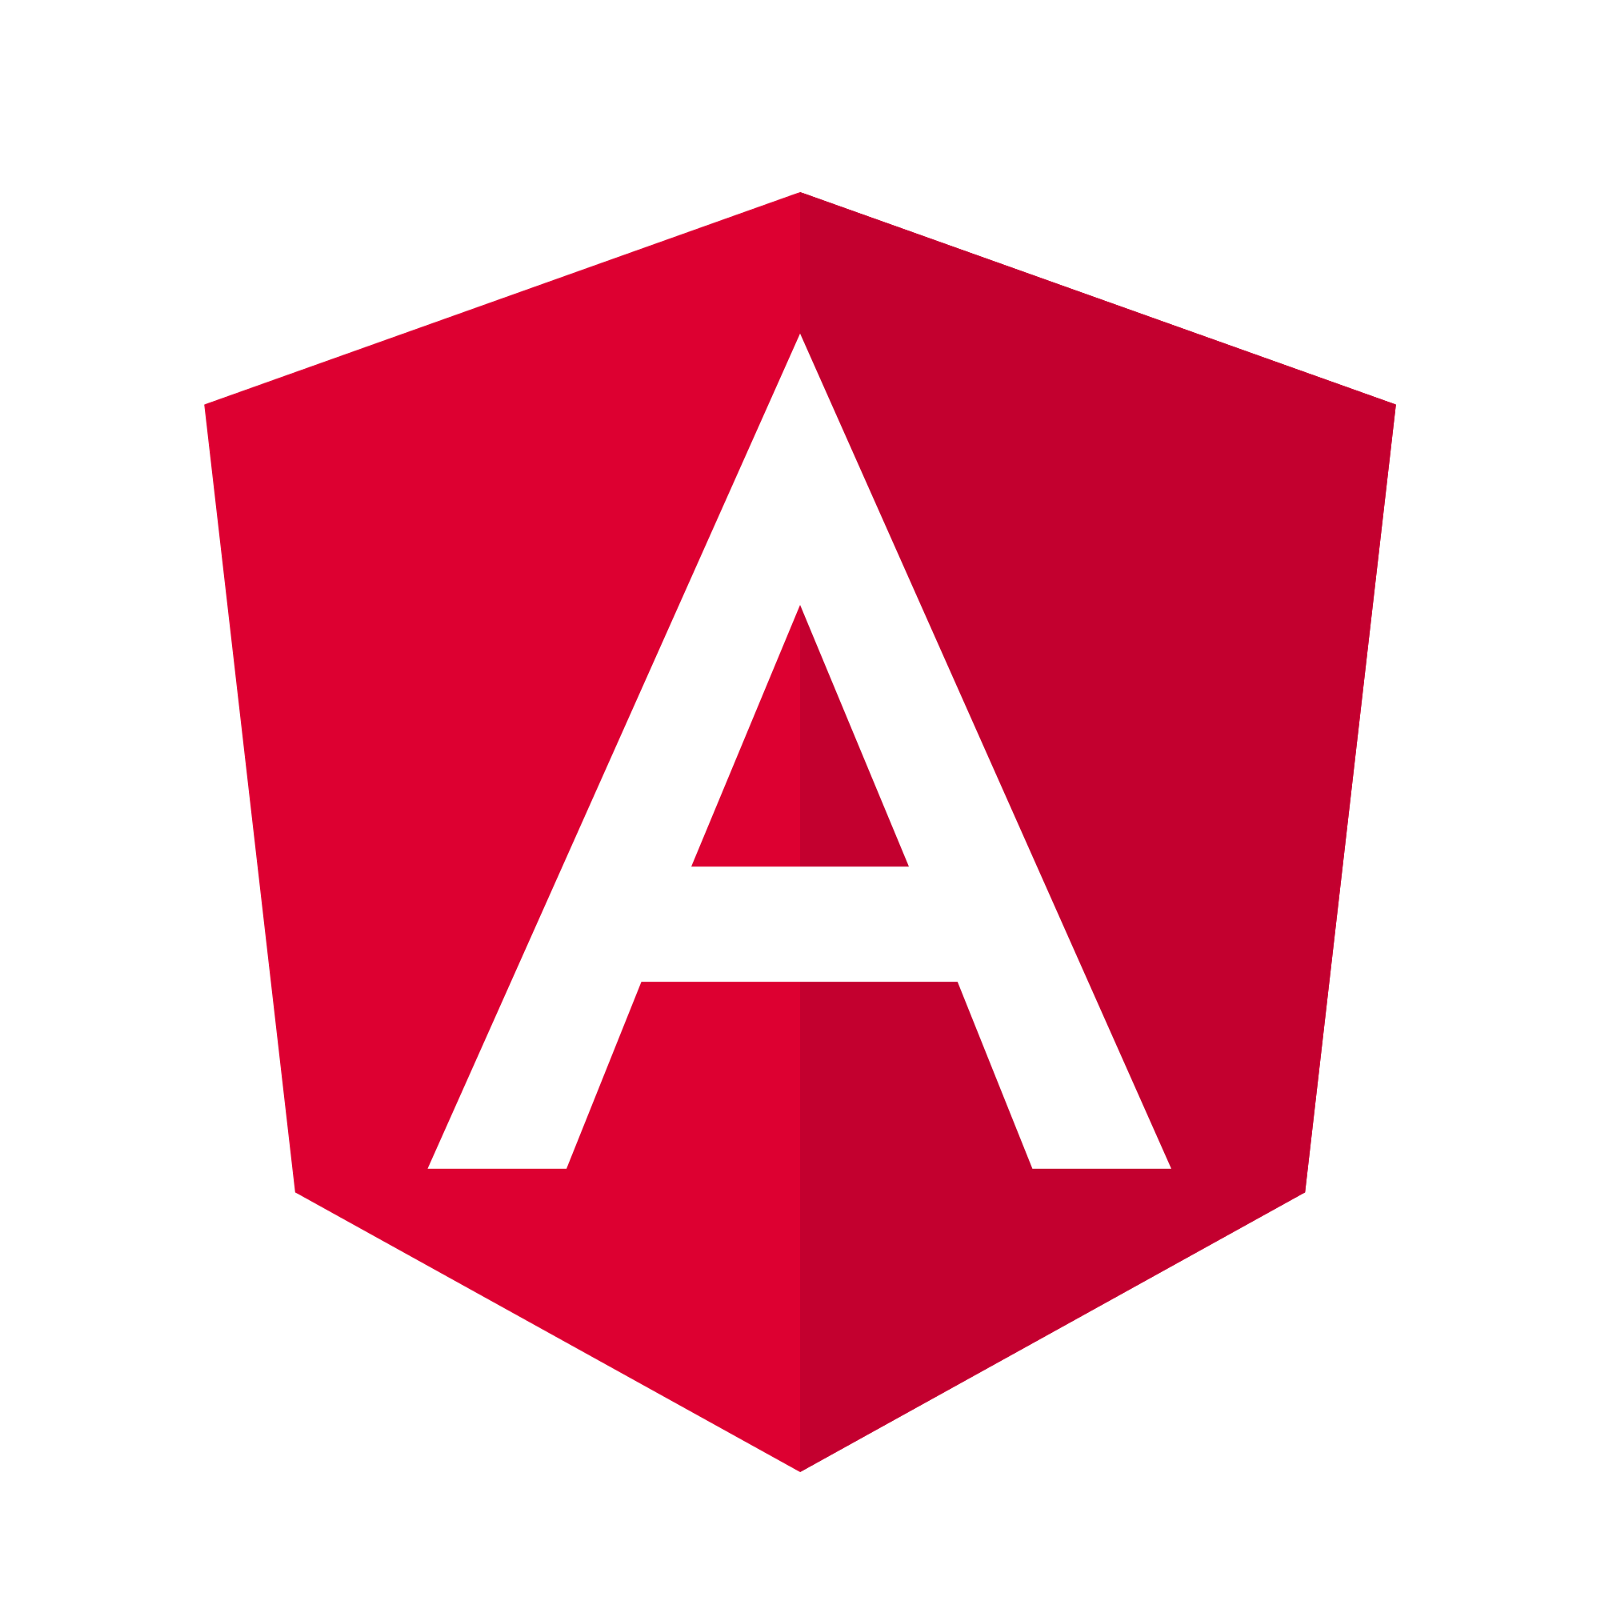 @output angular 4